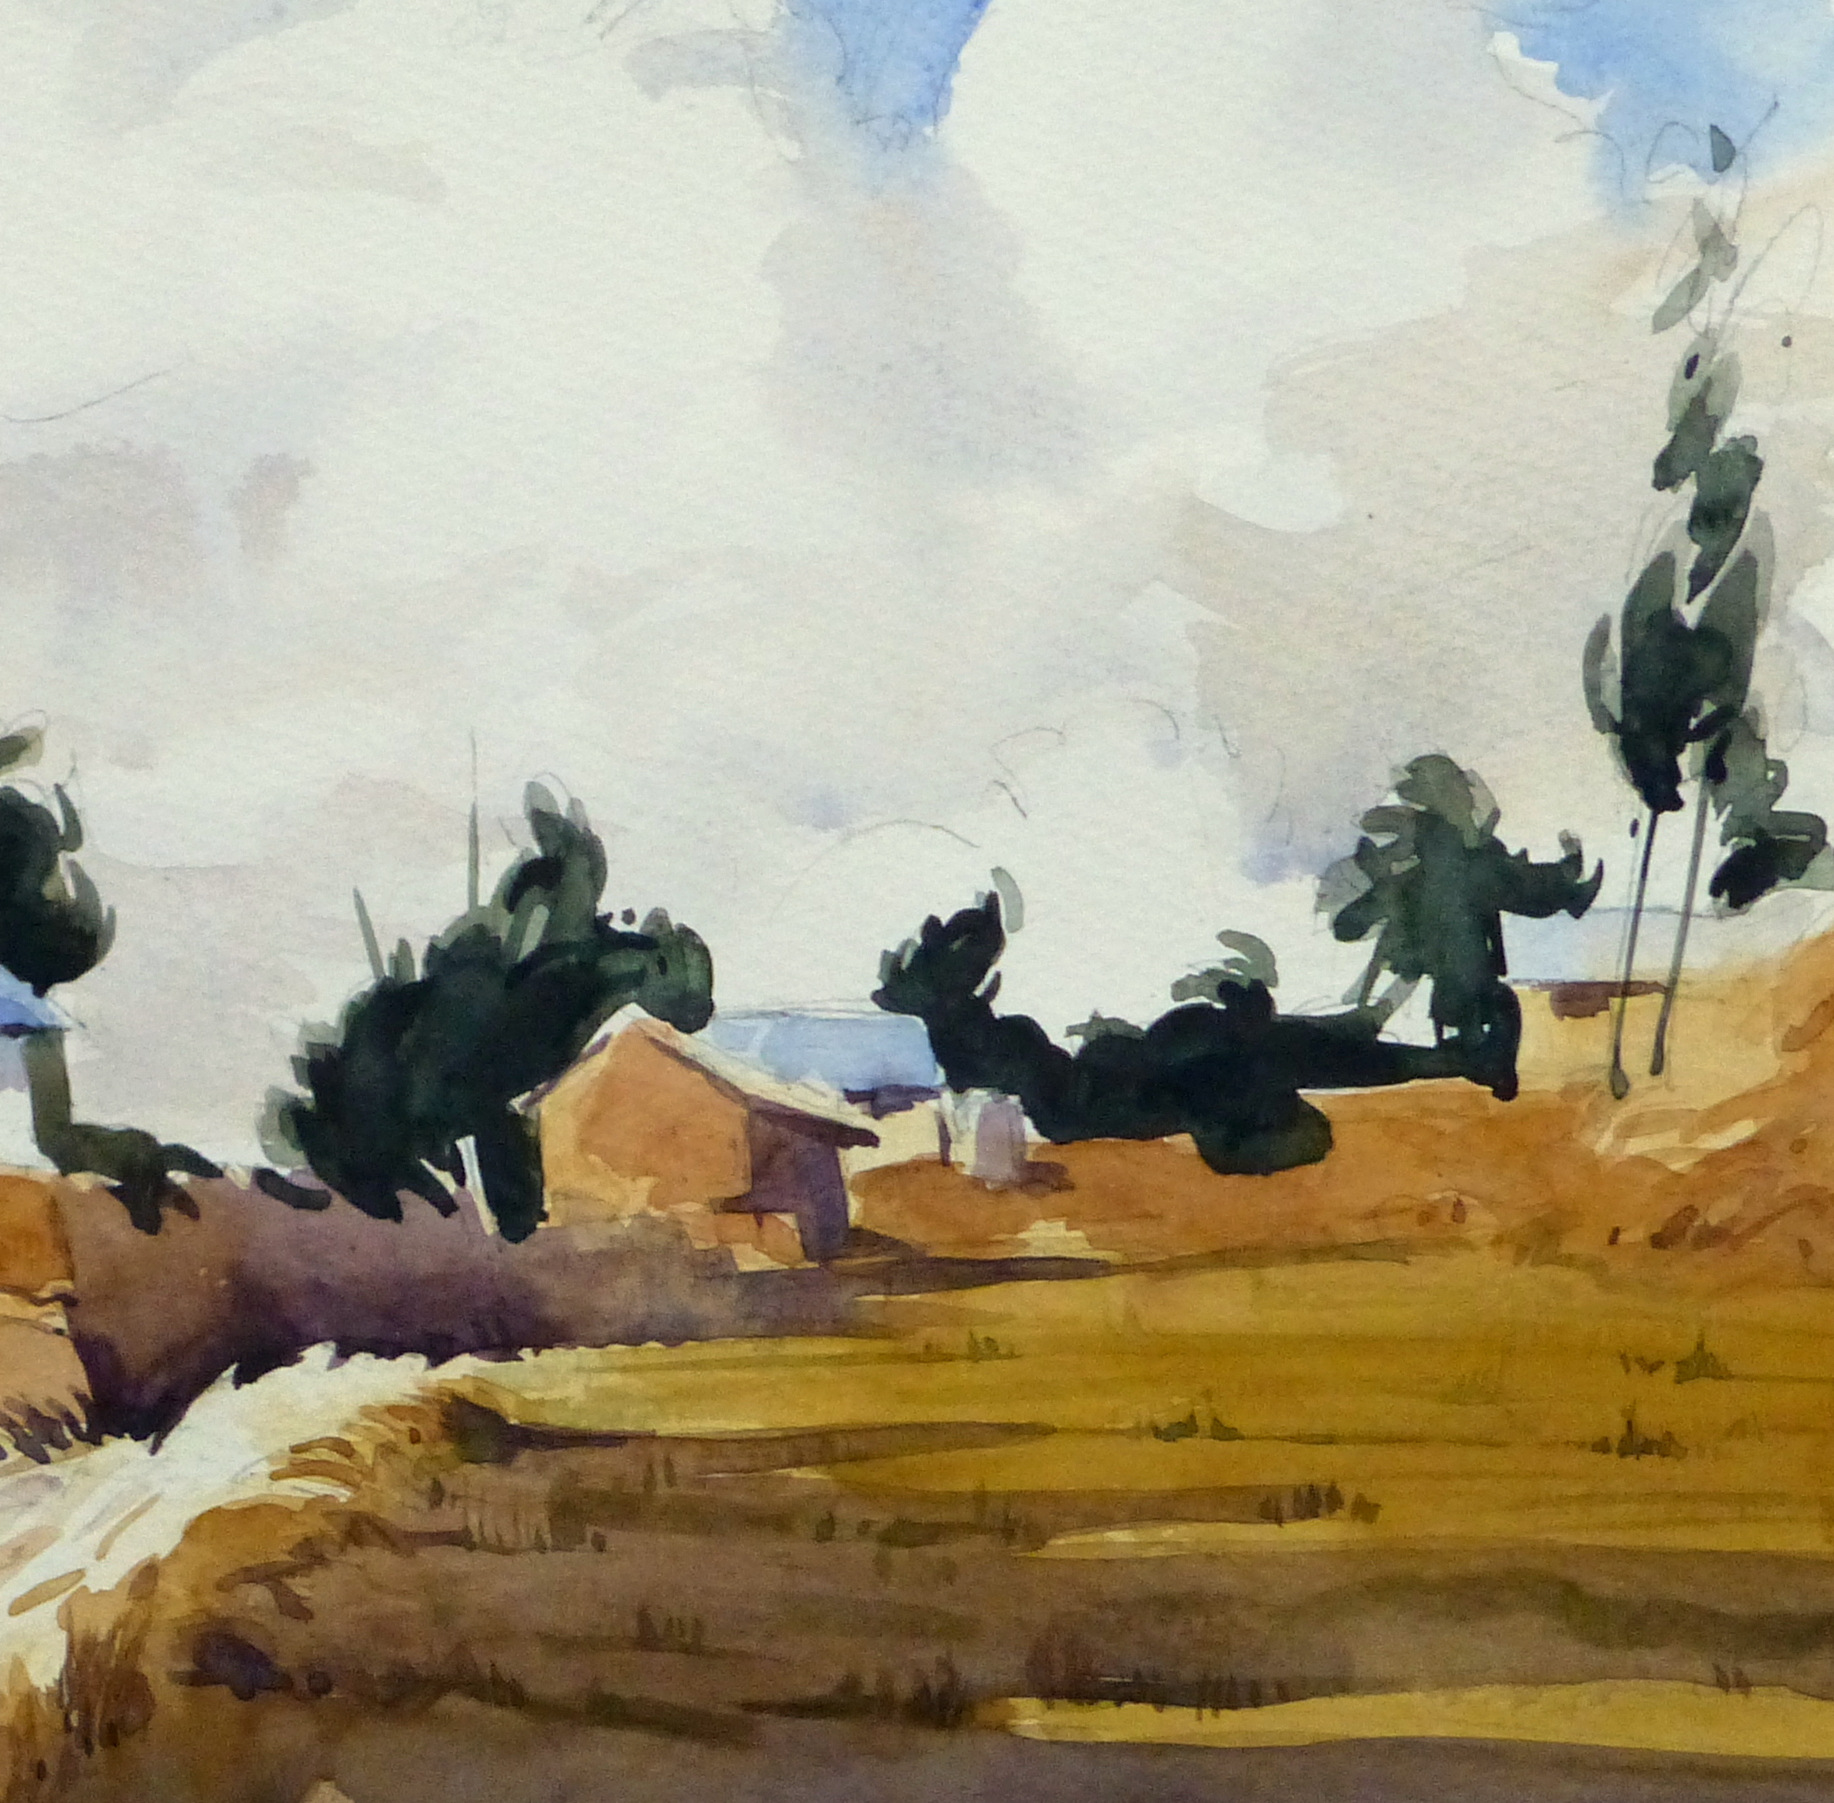 Watercolor Landscape - Rural Village, 2011-detail-10532M